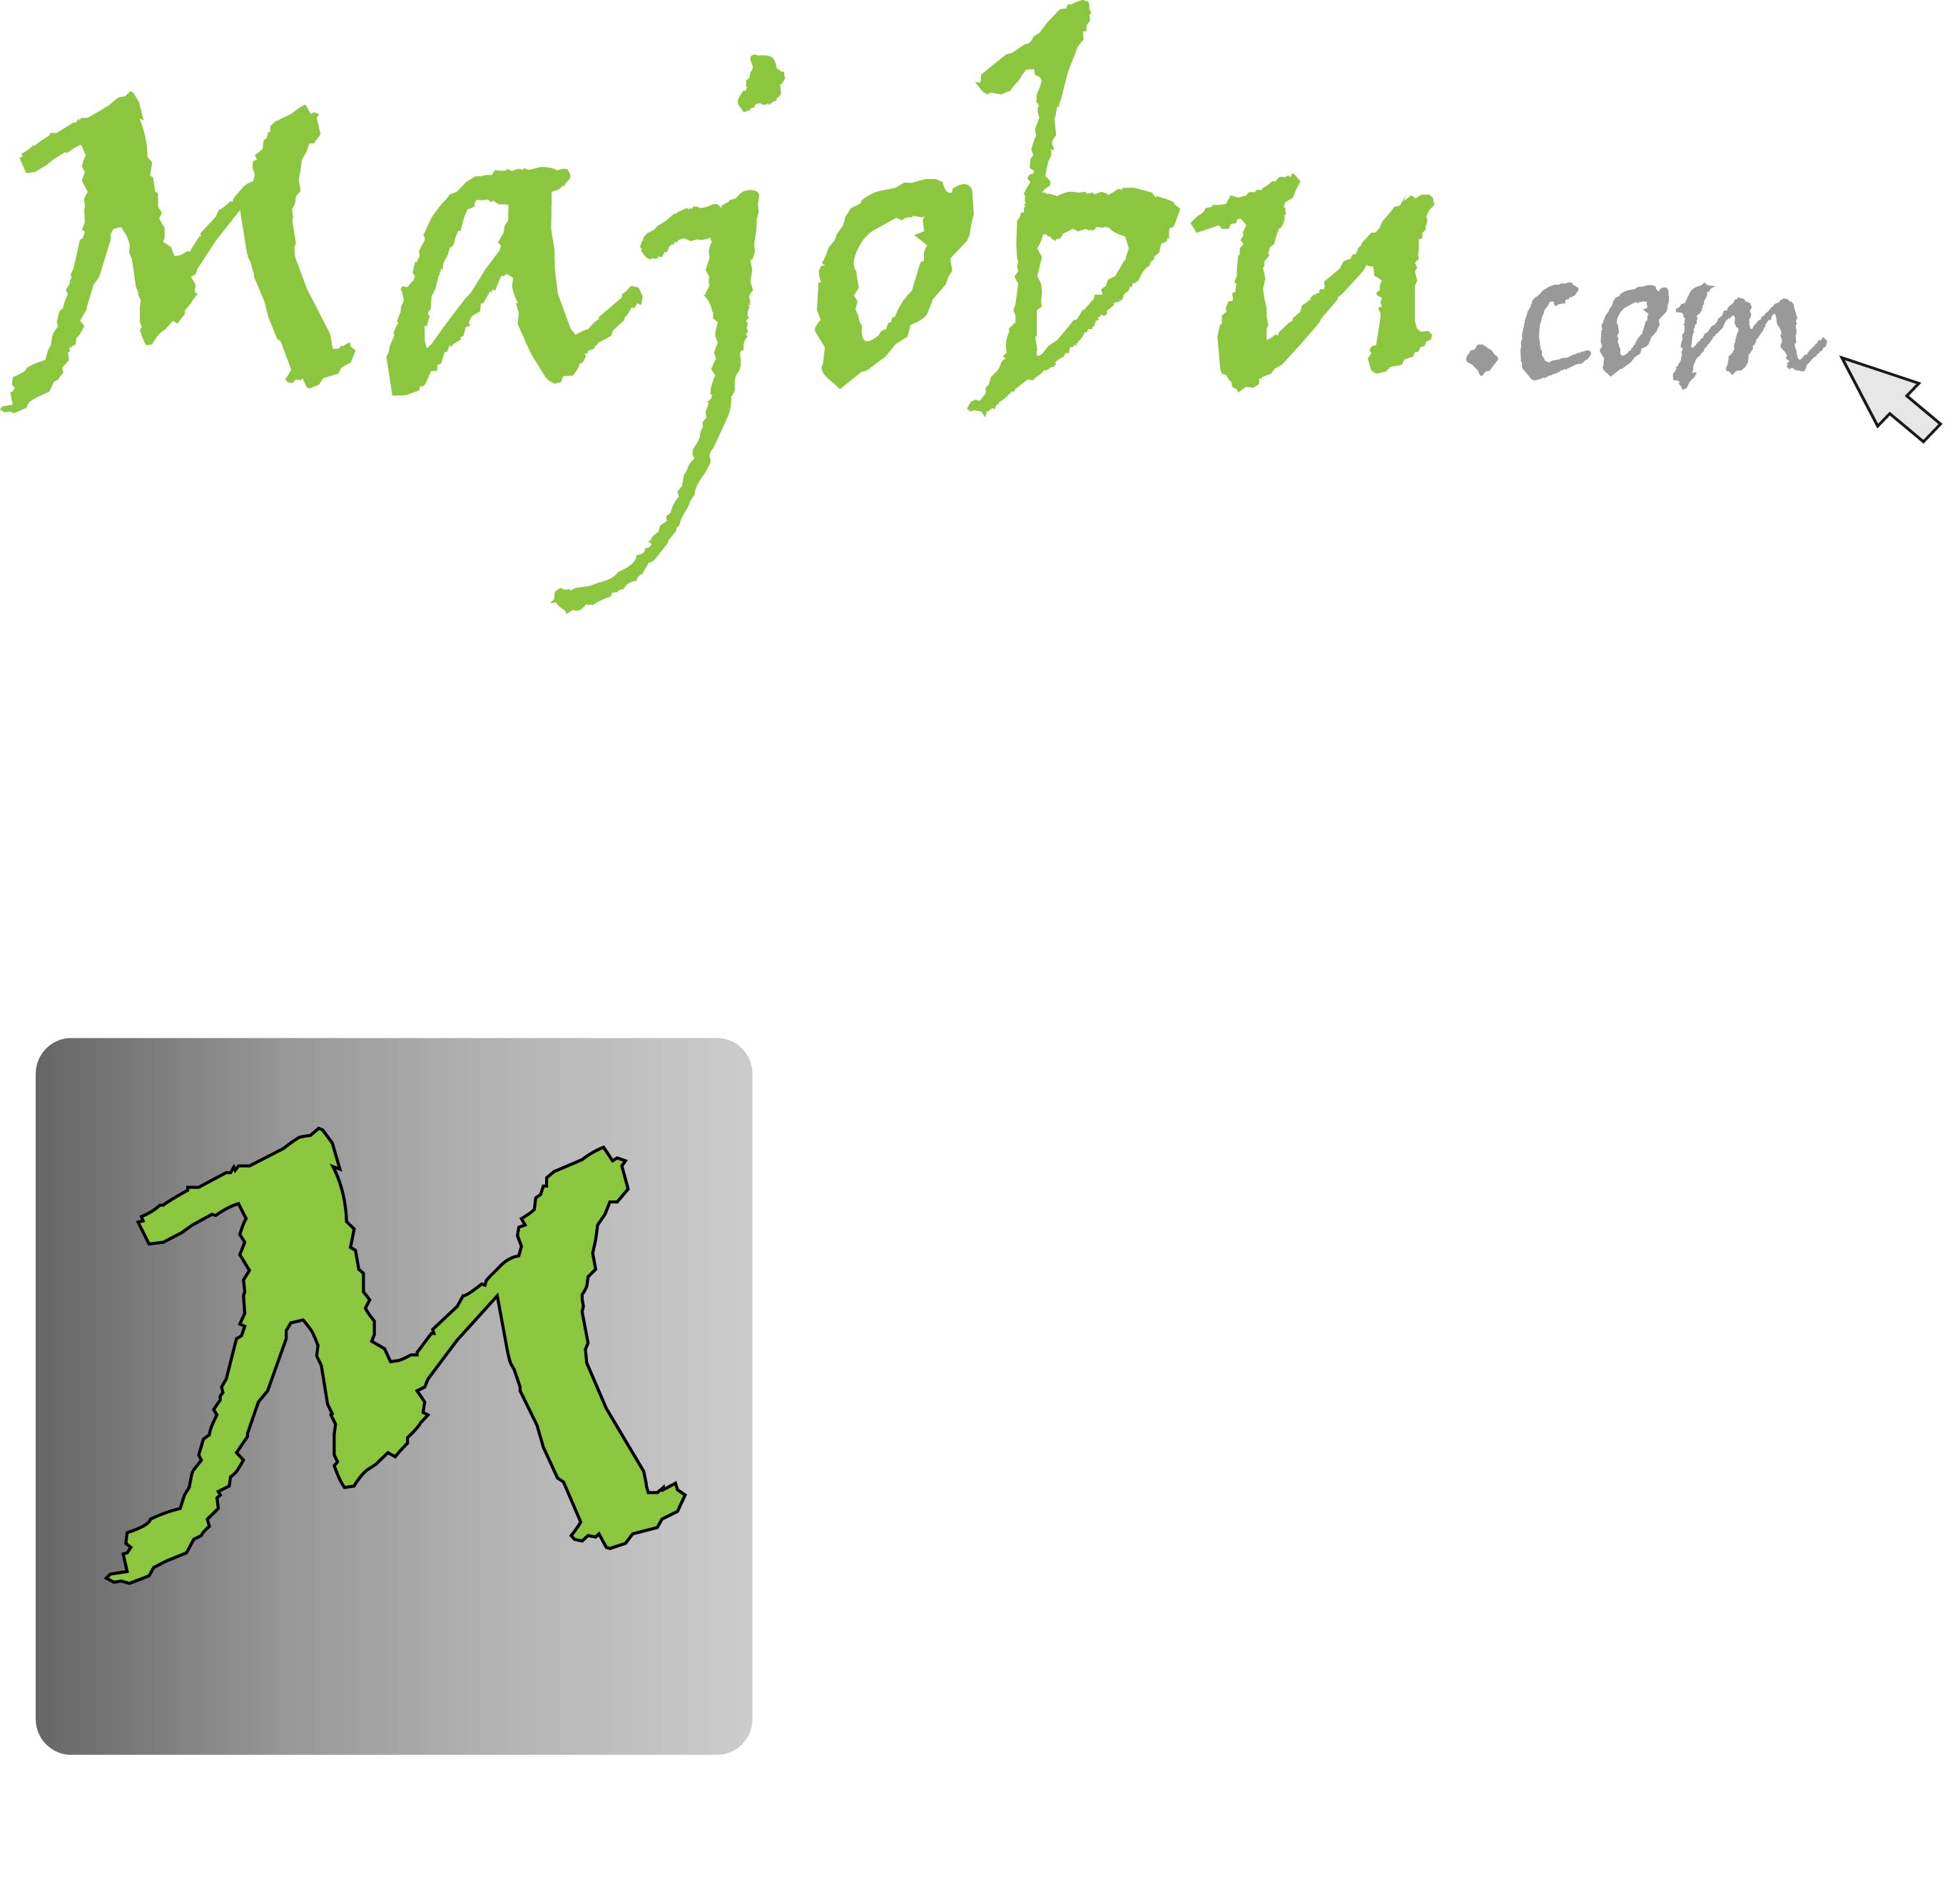 Logo Design by Andy McColm - Entry No. 64 in the Logo Design Contest Inspiring Logo Design for Majobu.